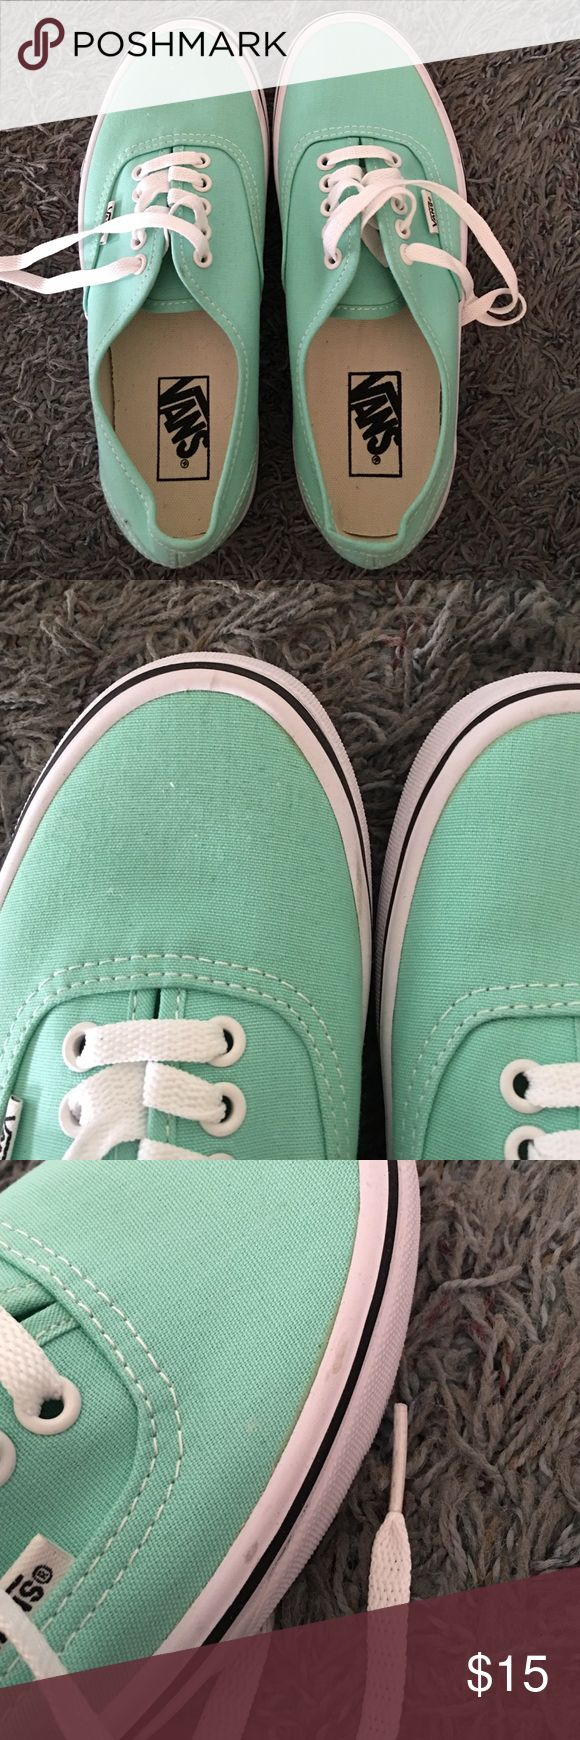 Mint green vans shoes Womens 8.5 mint green vans shoes still in good condition alittle dirt shown in pictures. Follow me on Instagram: tinkerbell114 :) Vans Shoes Sneakers